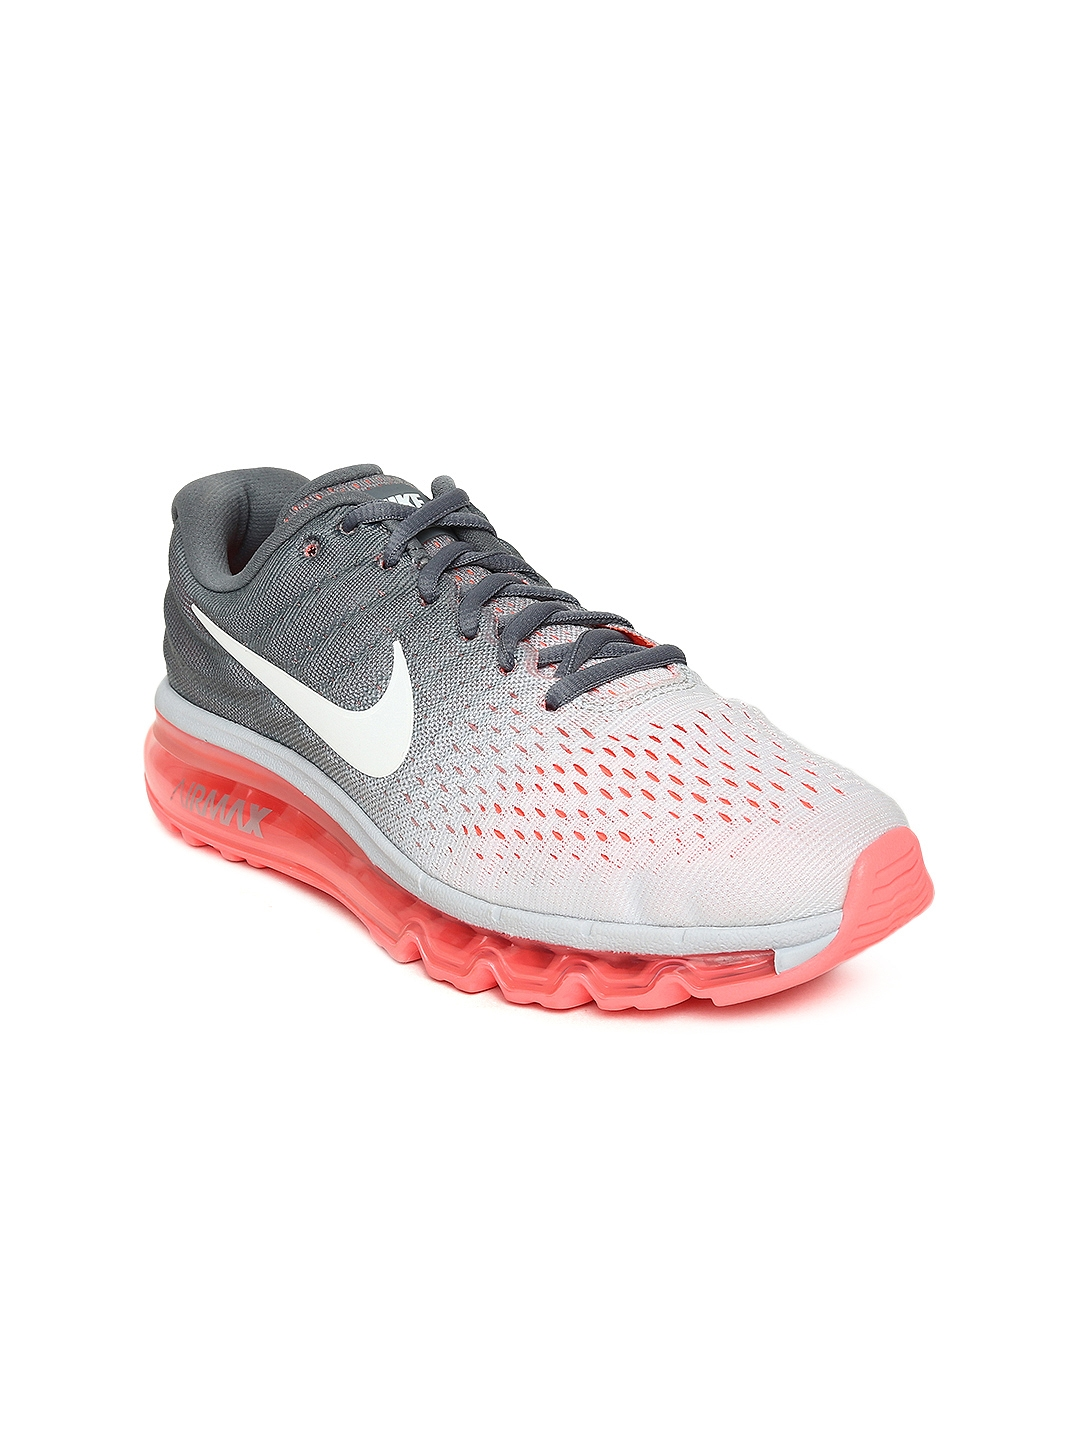 b51a819d5dfdaf Buy Nike Women White   Grey AIR MAX 2017 Running Shoes - Sports ...